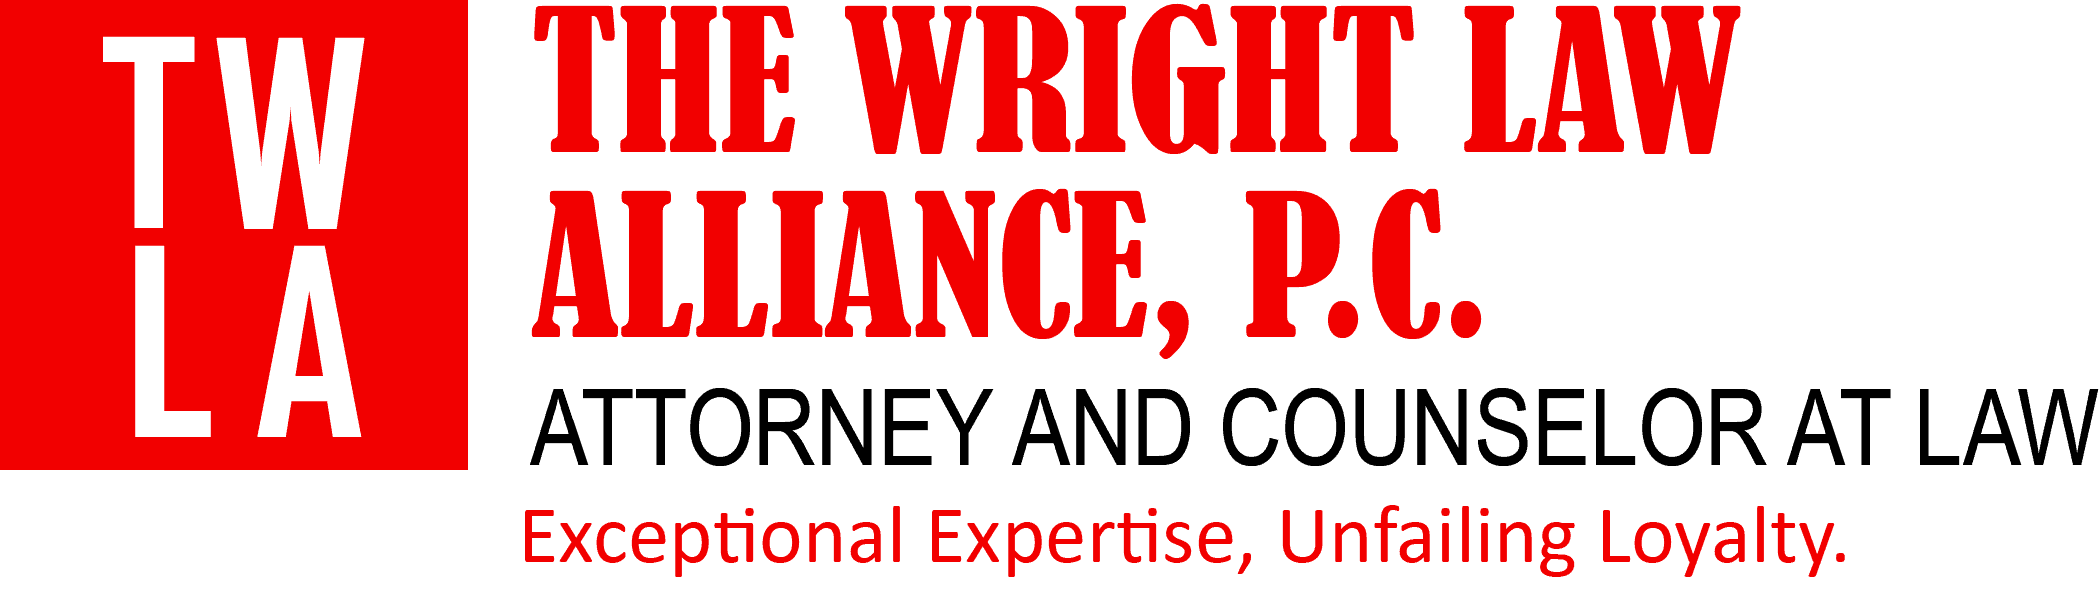 Wright-Law-Alliance